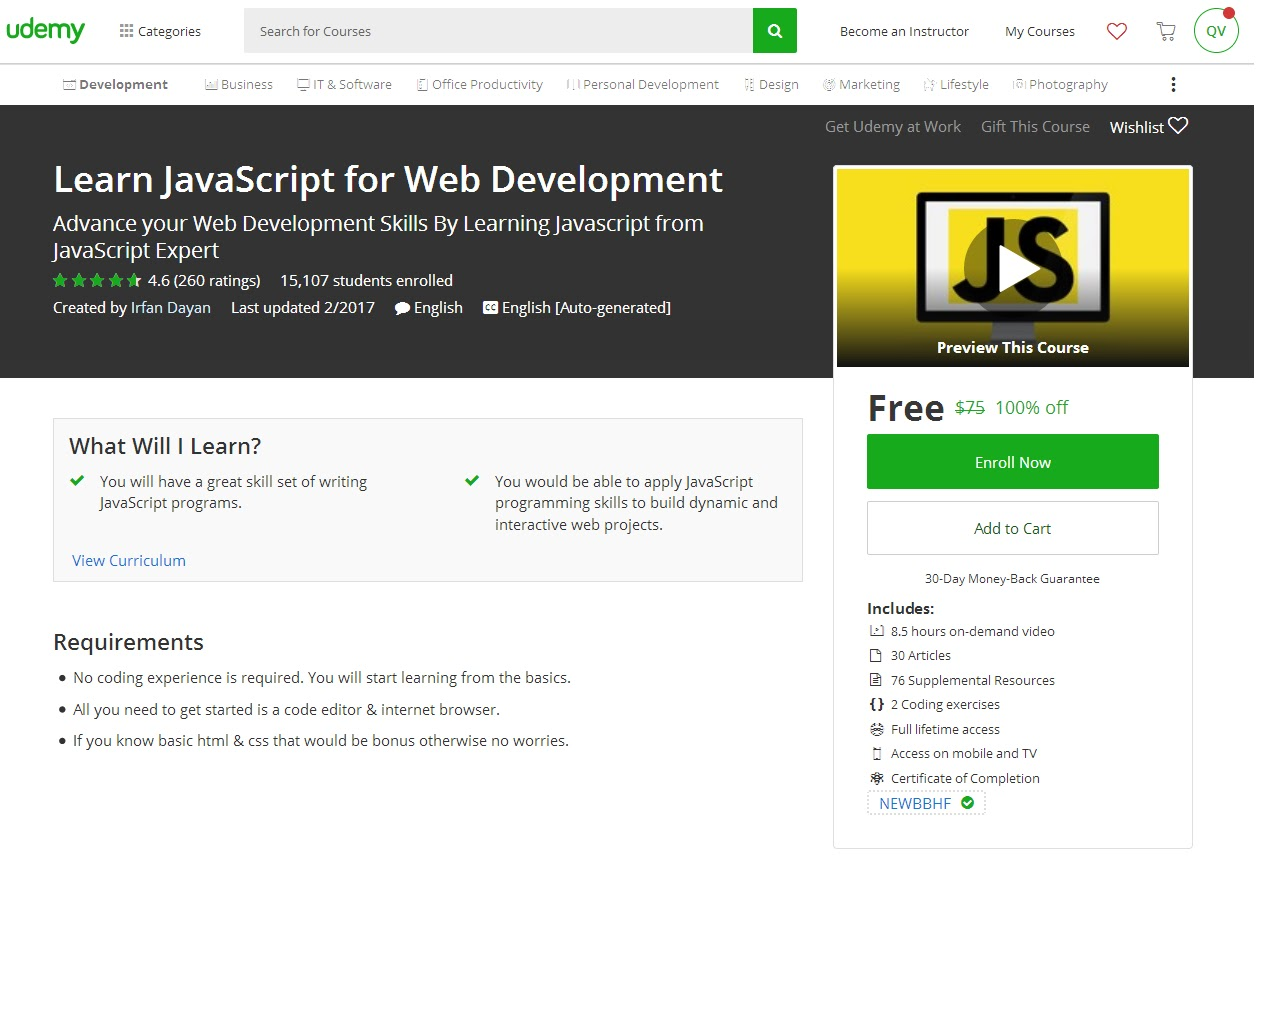 Udemy 100 OffAndroid Game Development for Beginners 100